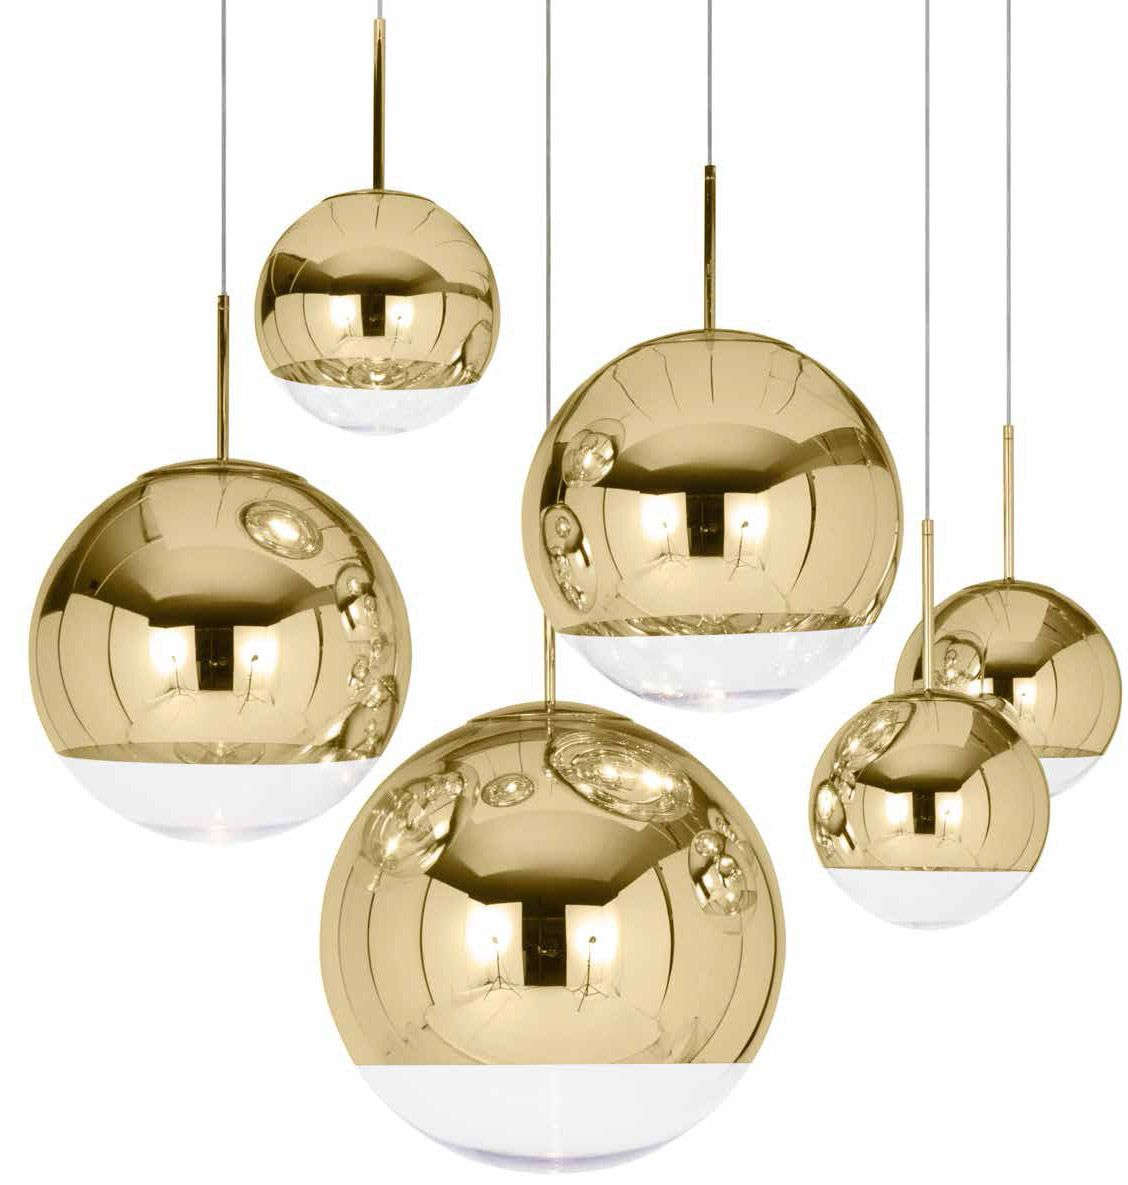 Tom Dixon Mirror Ball Gold Pendant Lamp Tom Dixon Ball Pendant Lighting Gold Pendant Lighting Glass Ball Pendant